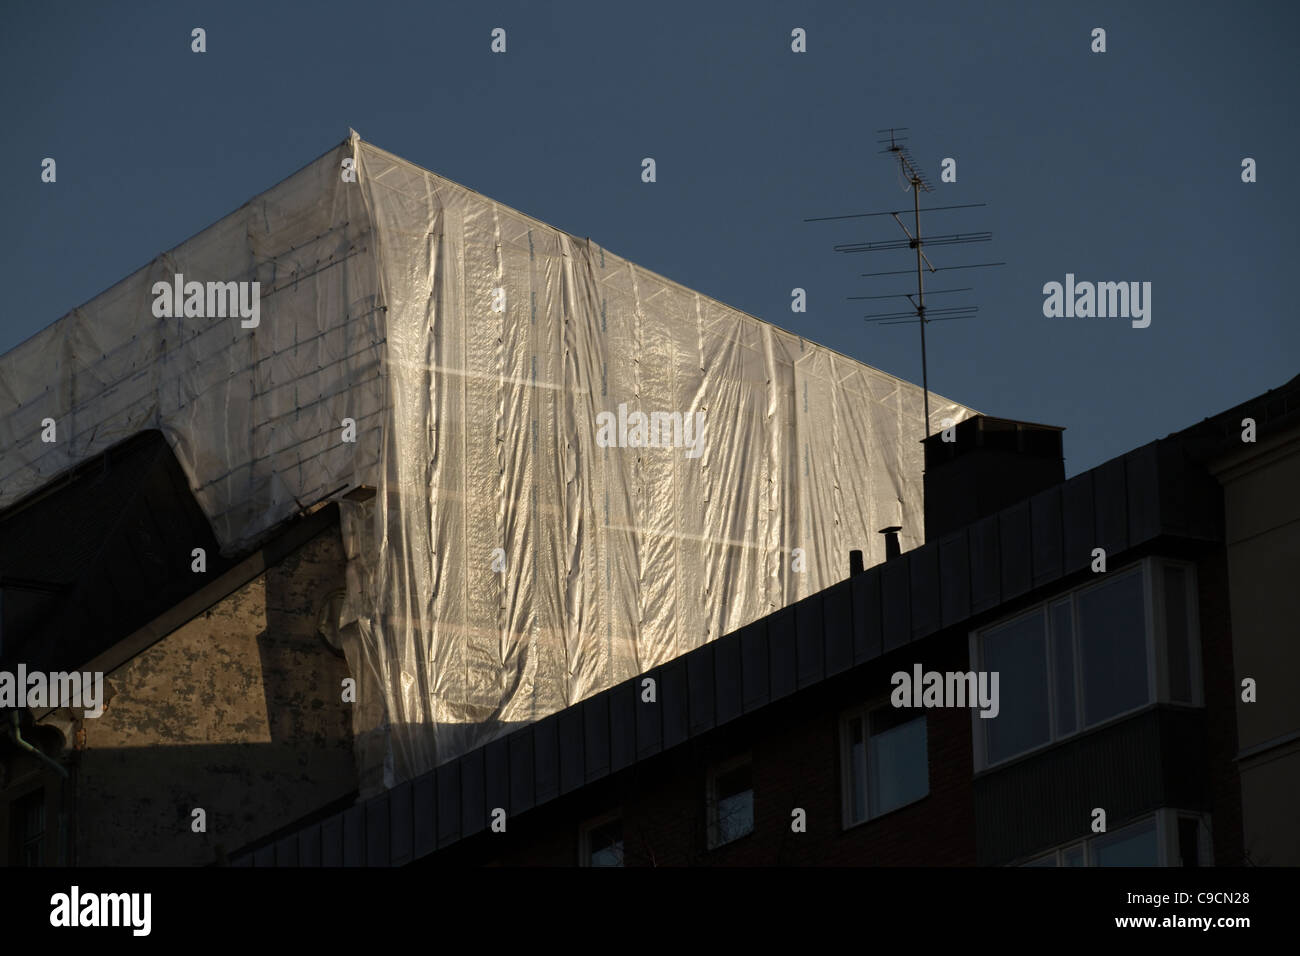 Plastic sheeting covering building at sunset - Stock Image